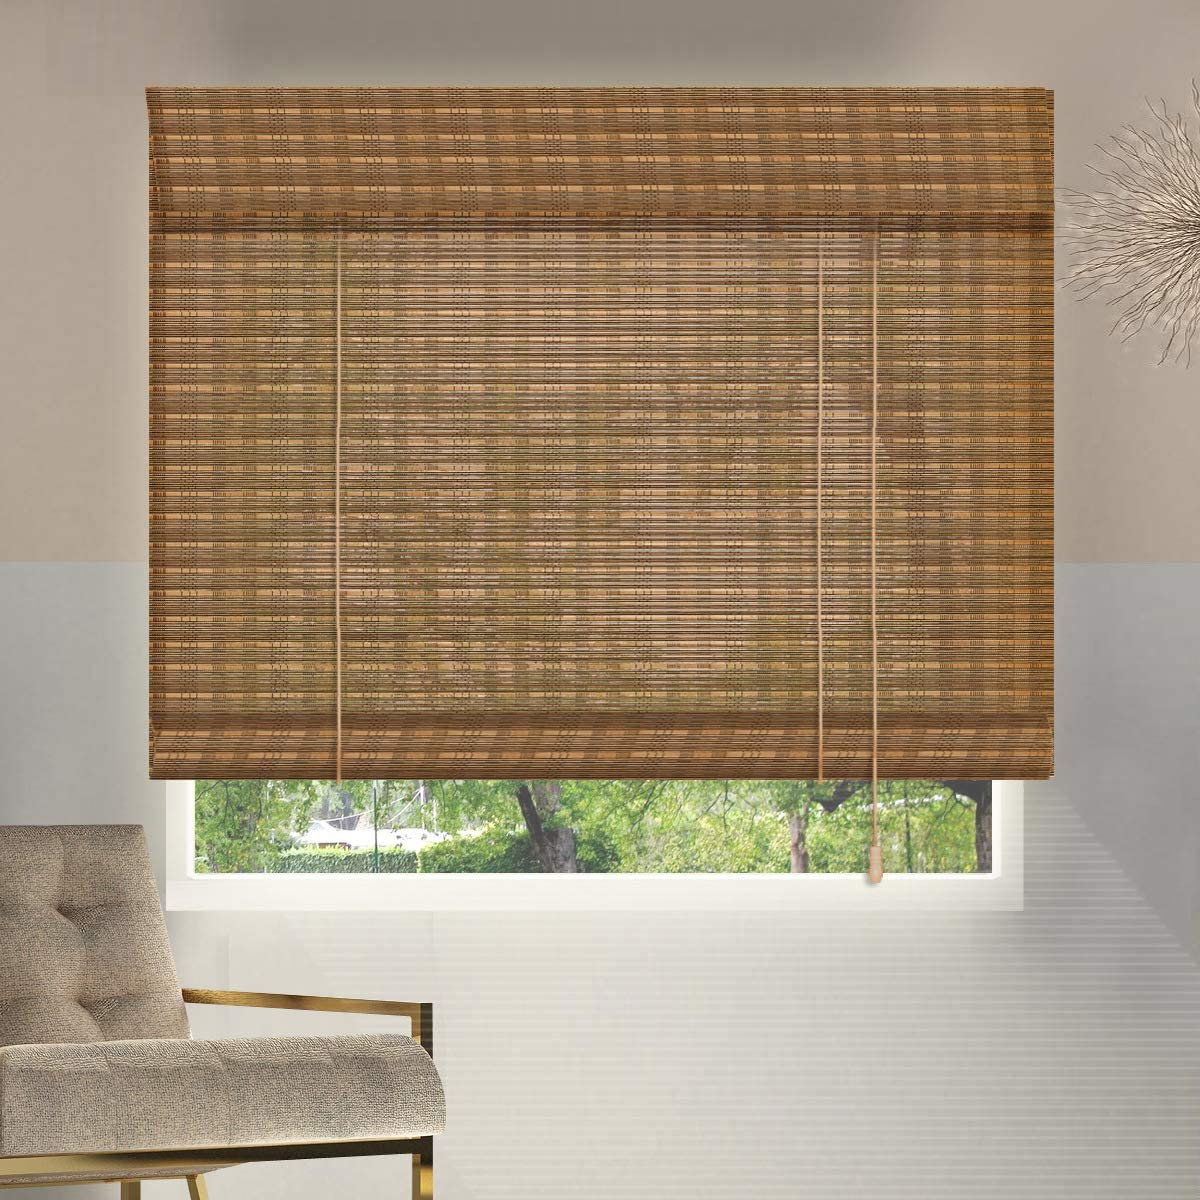 ZY Blinds Bamboo Window Blinds, 24W x 36H Inches Bamboo Light Filtering Roll Up Window Roller Shades with Valance for Doors, Sliding Door, Restaurant, Kitchen, Living Room, Porch, Balcony, Pattern 11